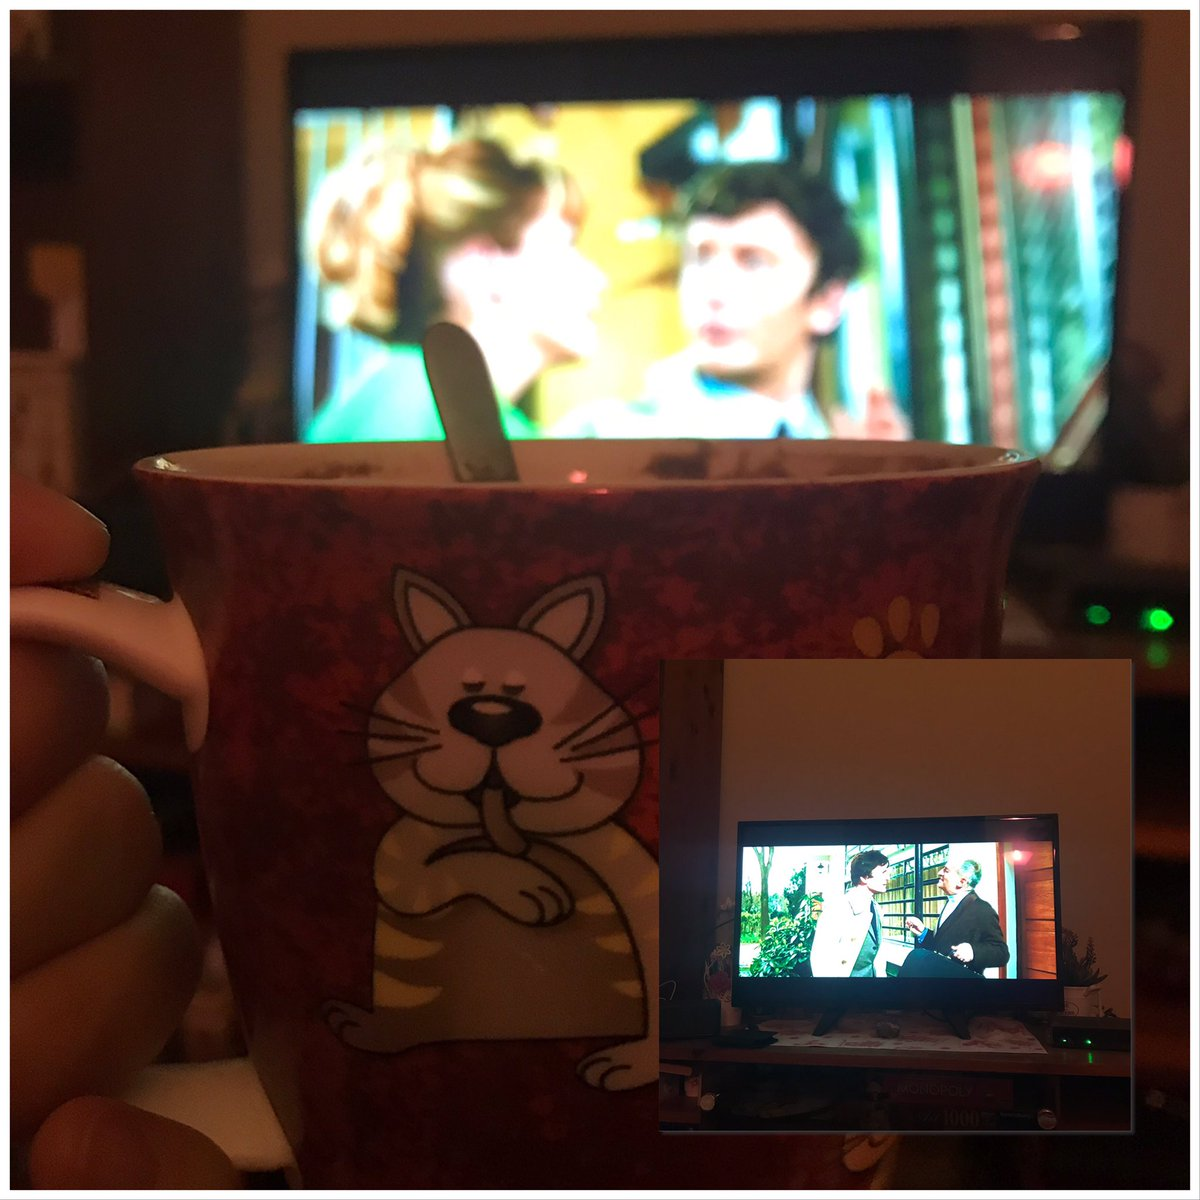 test Twitter Media - Day973: Perfect winter night with #cocoa and the #oscarmovie #1000happydays https://t.co/Z23n3RB2nl